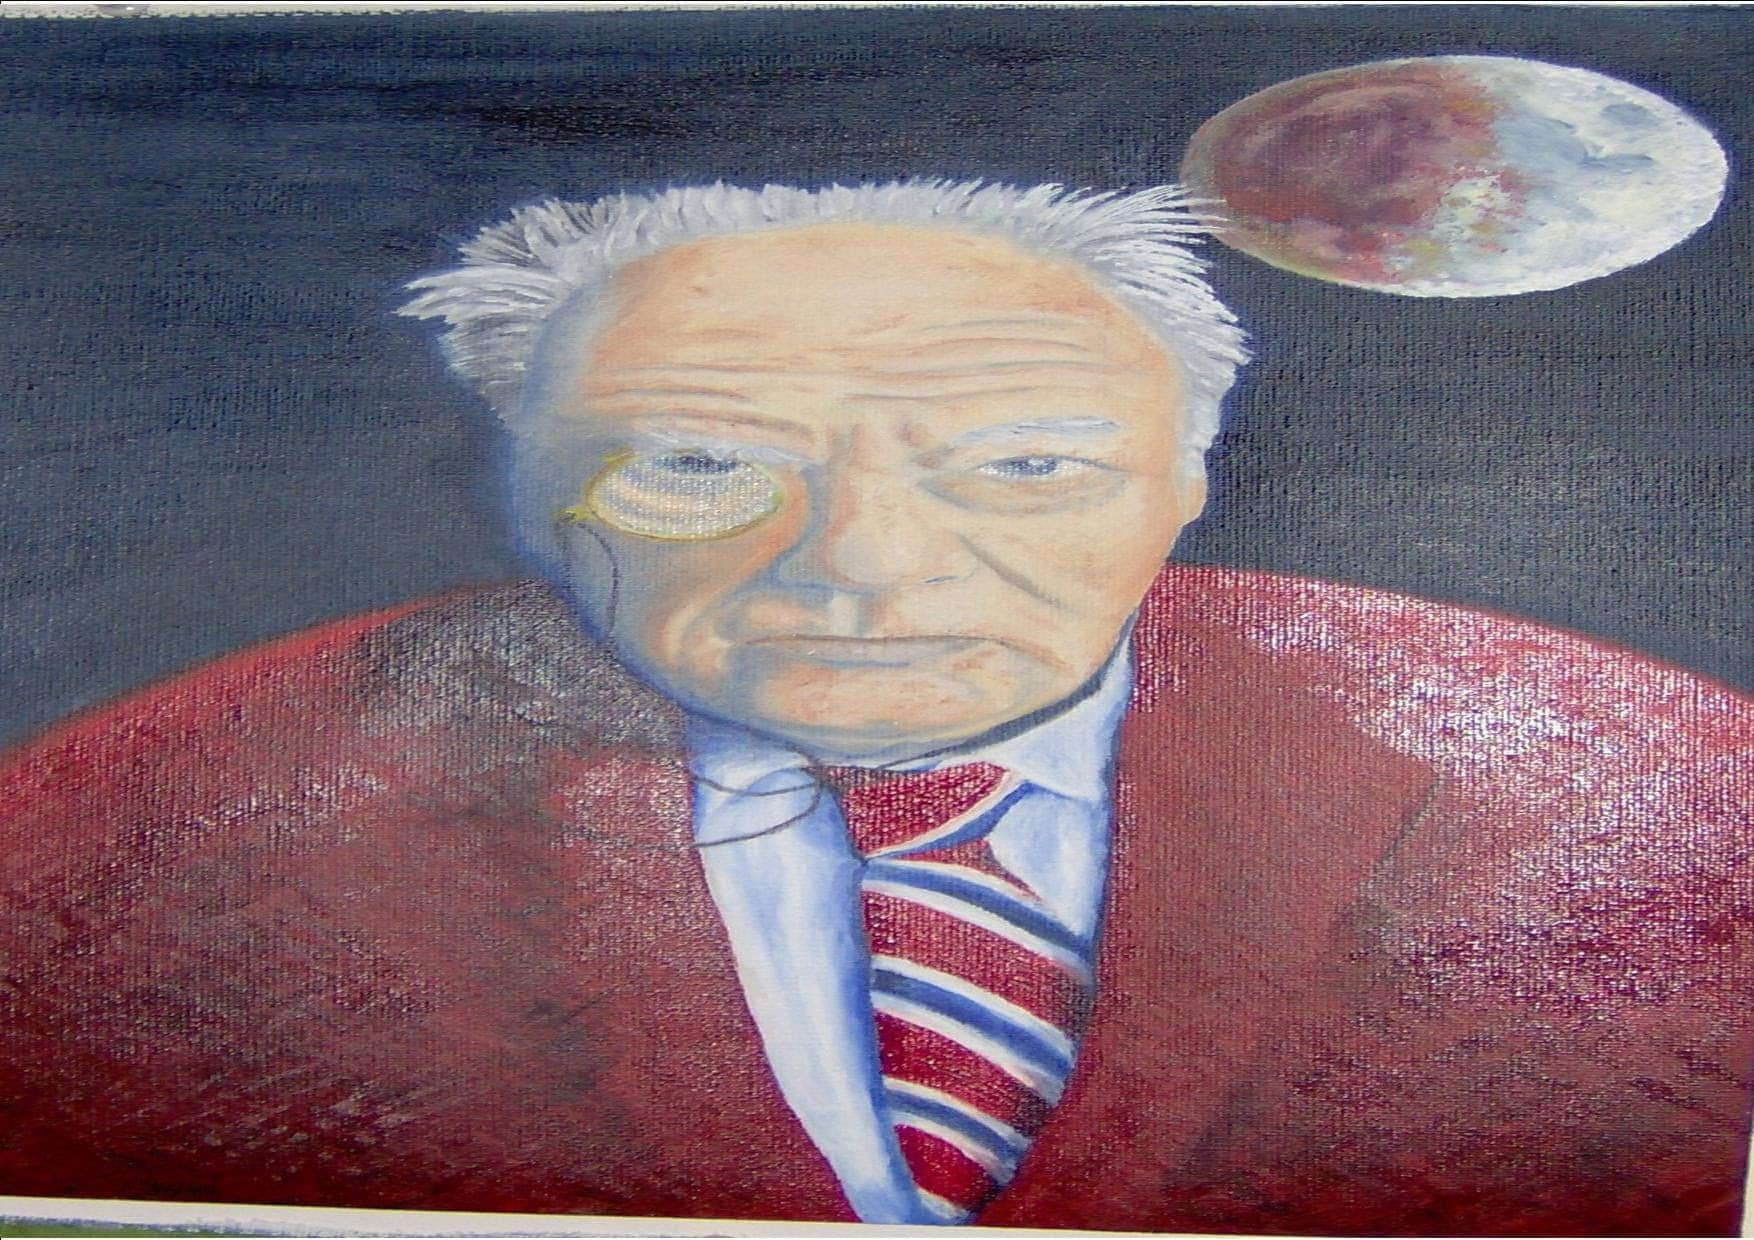 Tribute to Sir Patrick Moore who died today. 21